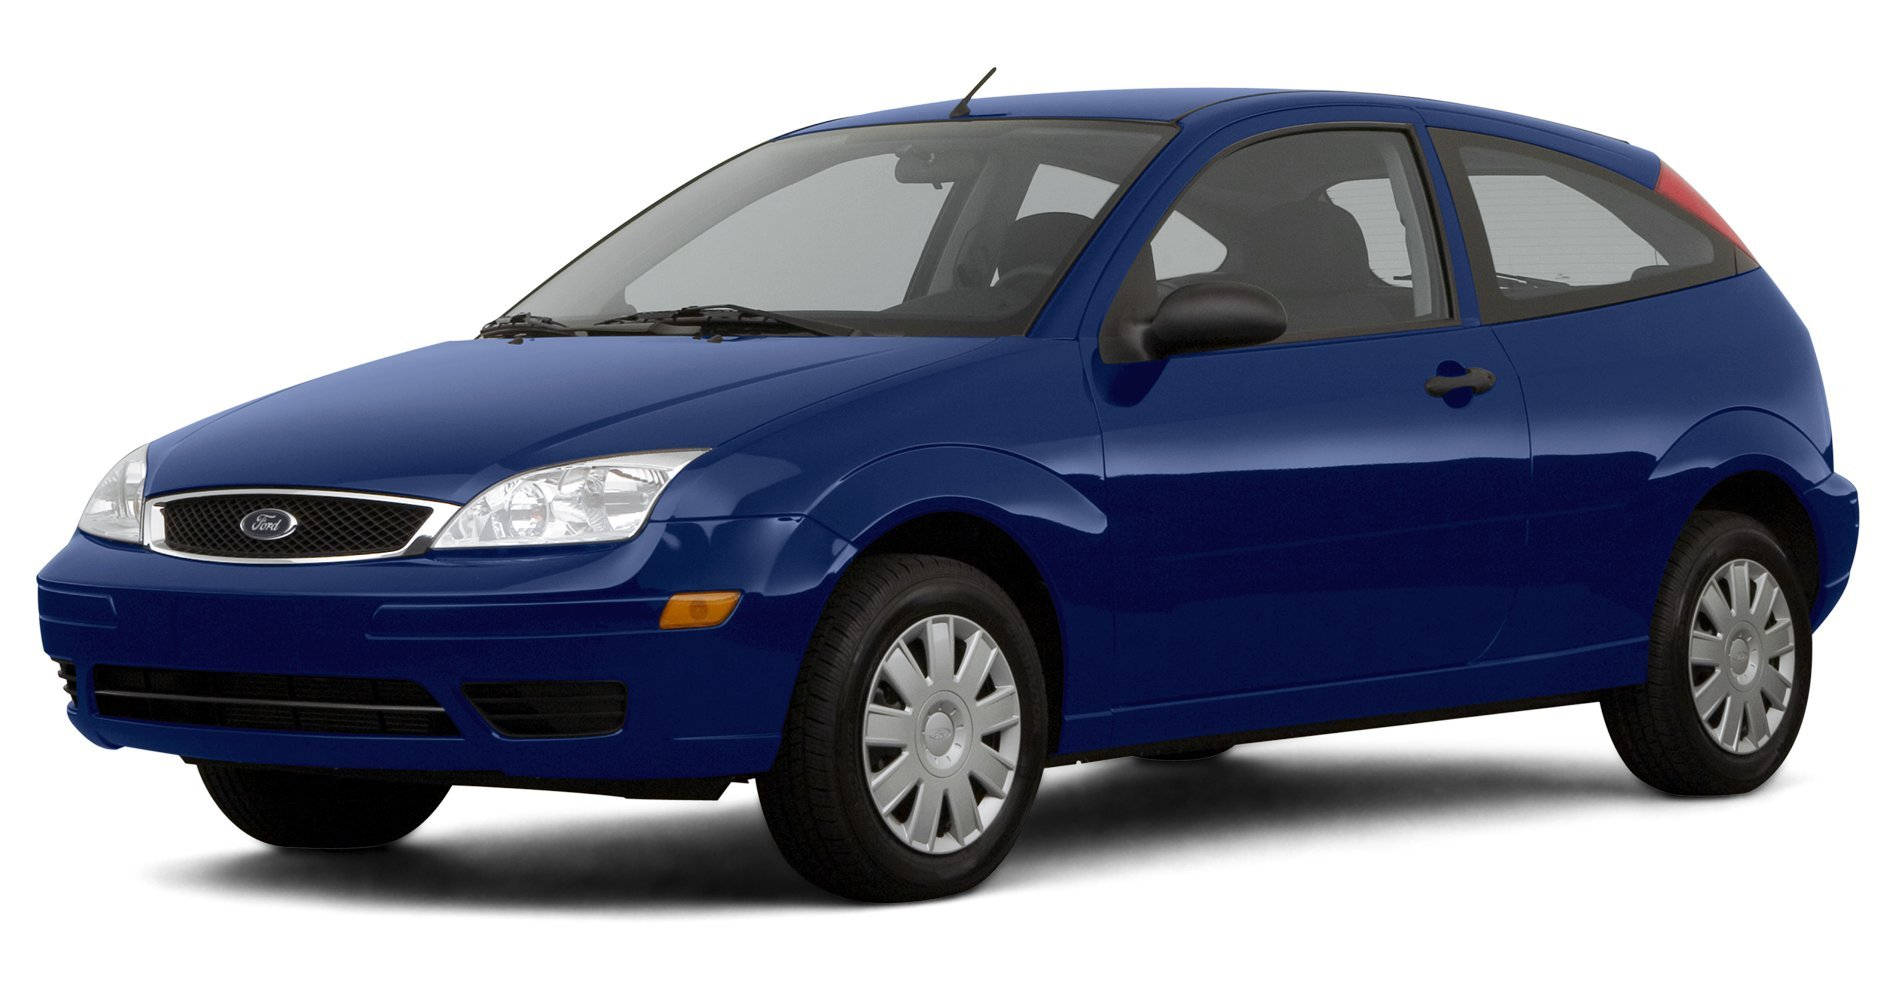 2007 ford focus s 3 door coupe